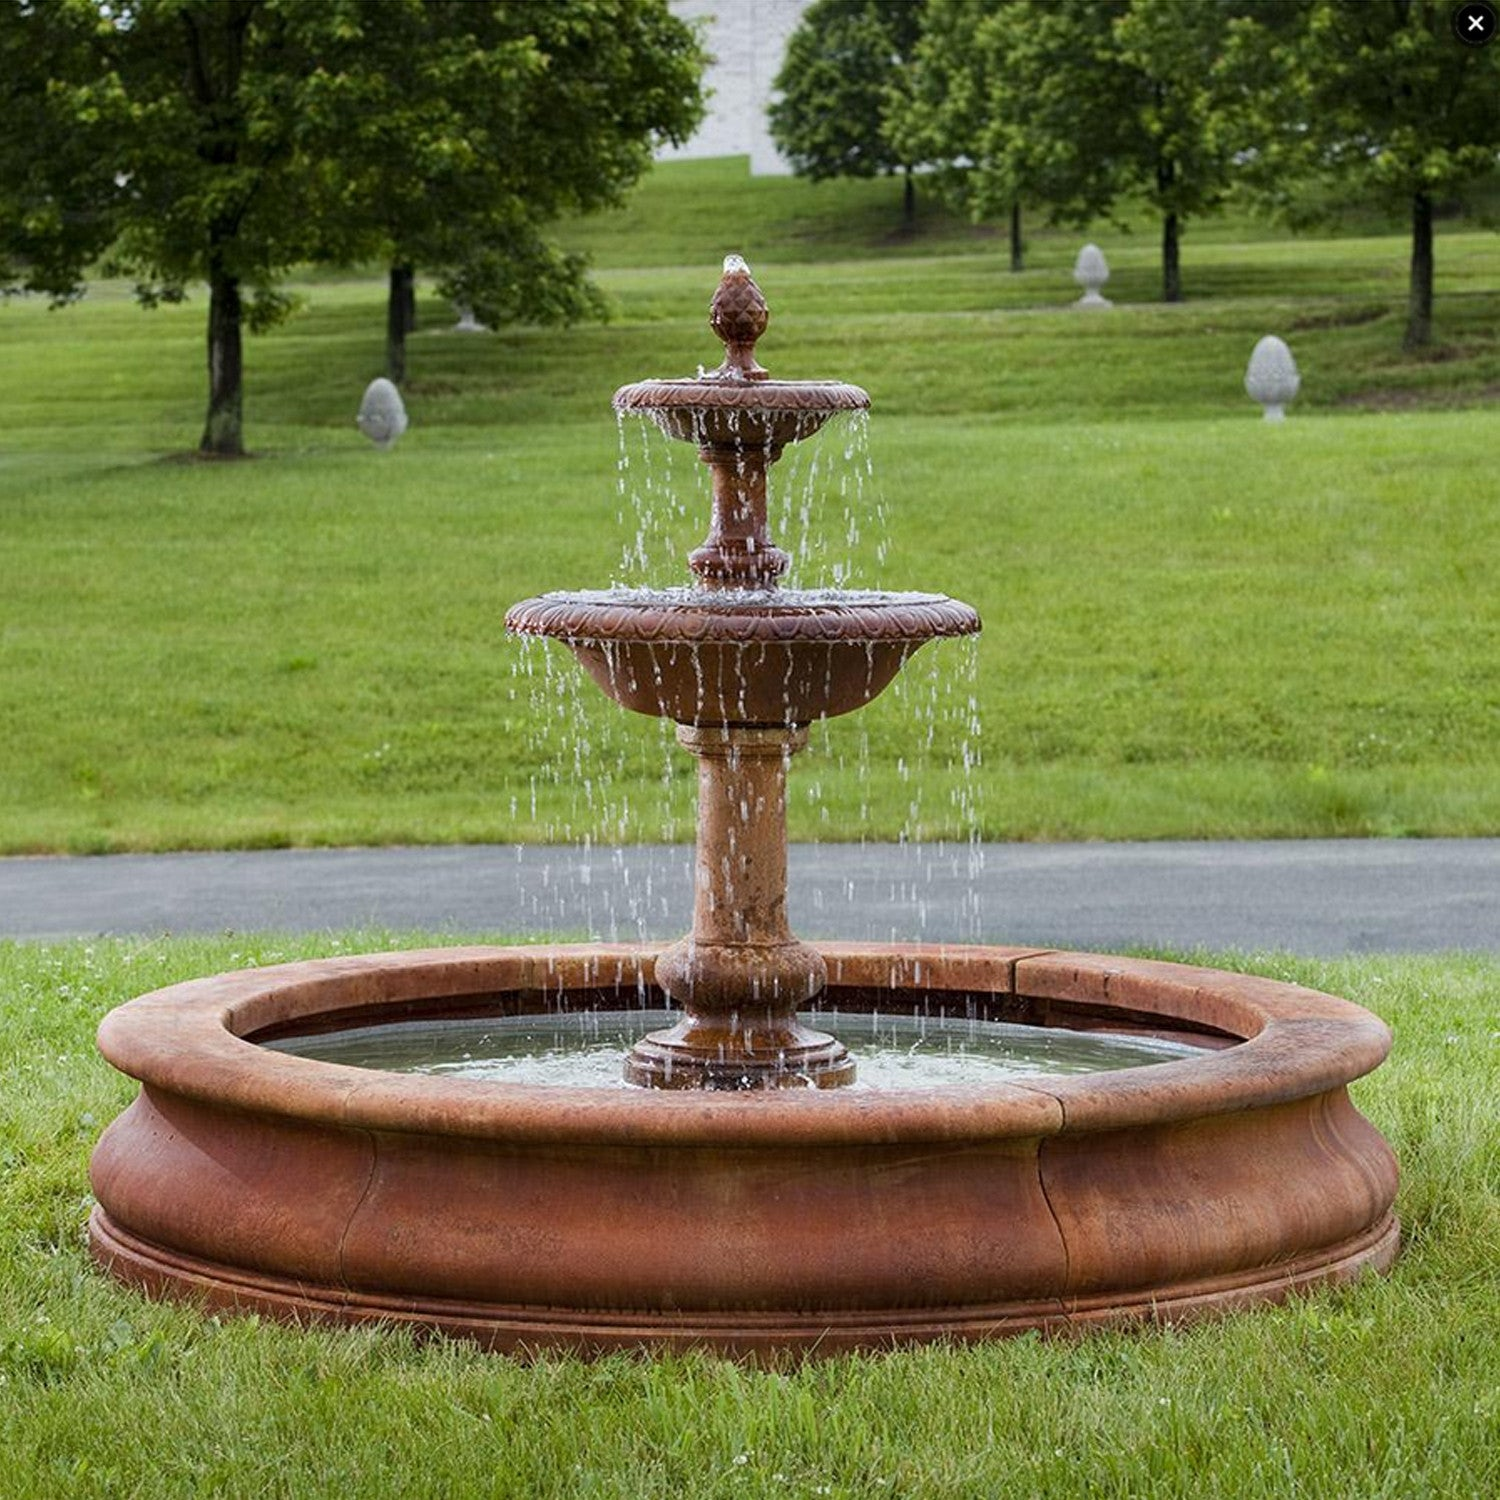 Williamsburg Pineapple 2 Tier Outdoor Water Fountain in Basin - Soothing Walls